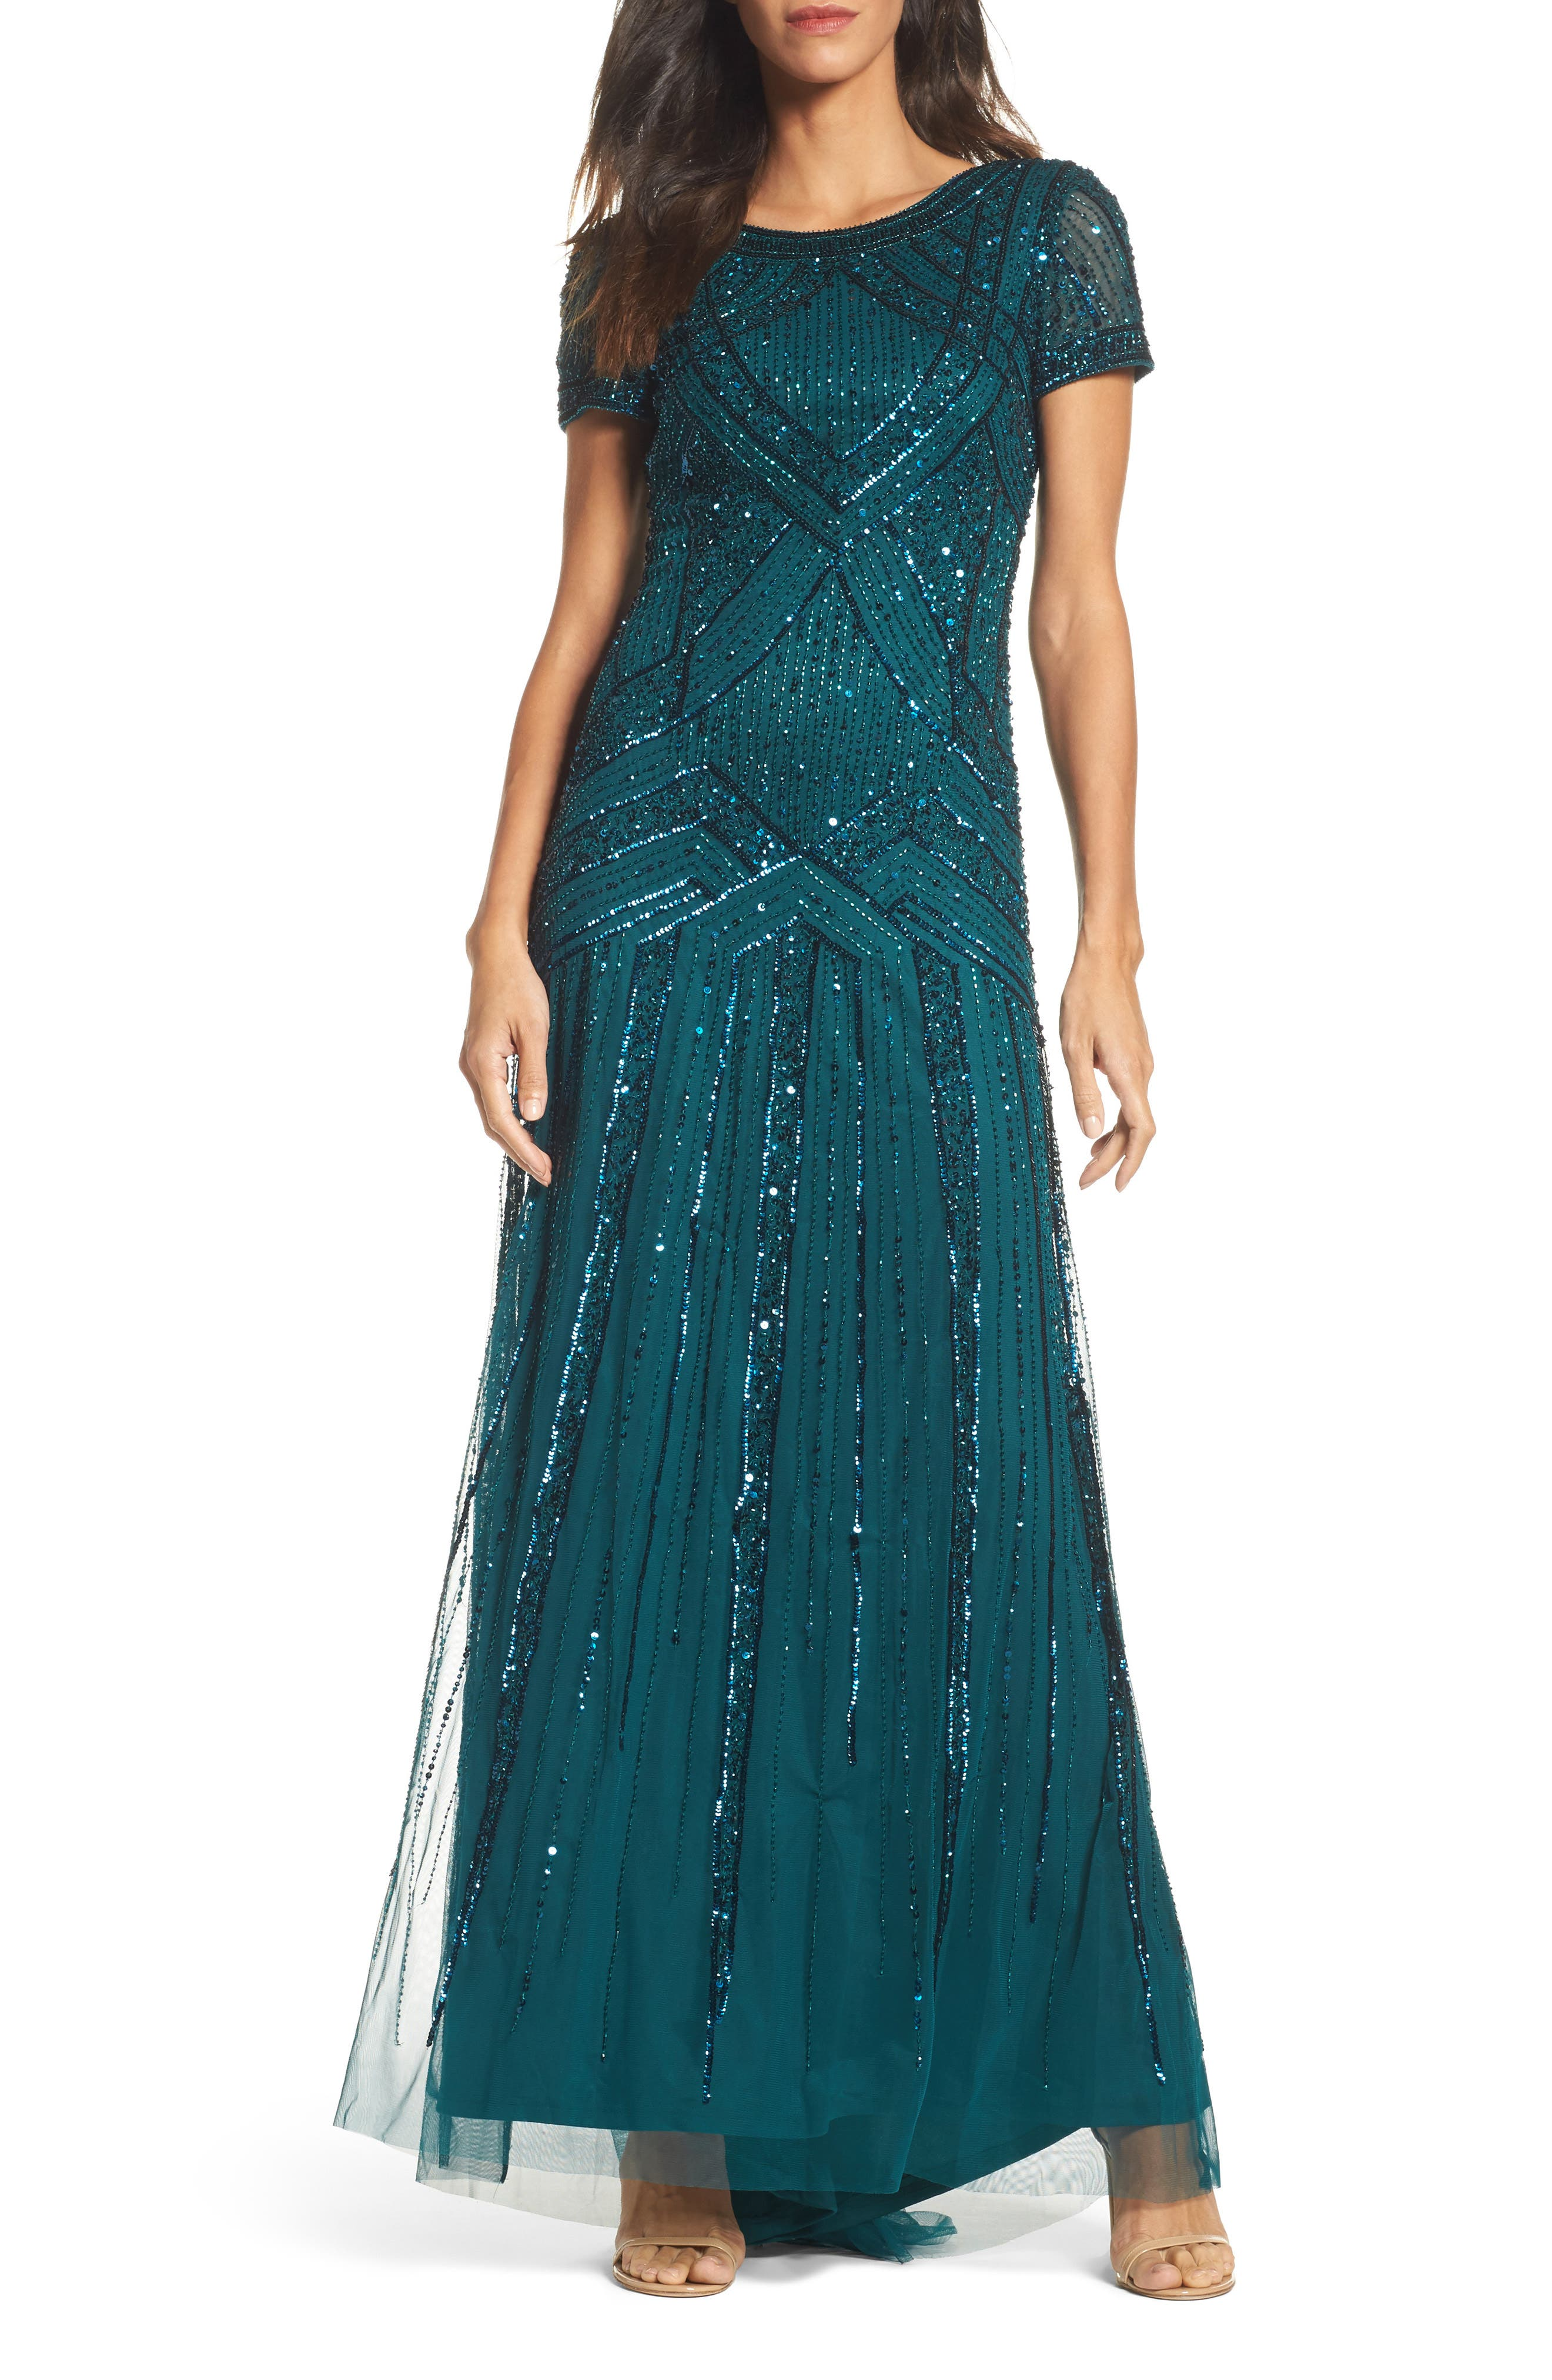 Main Image - Adrianna Papell Embellished Short Sleeve Gown